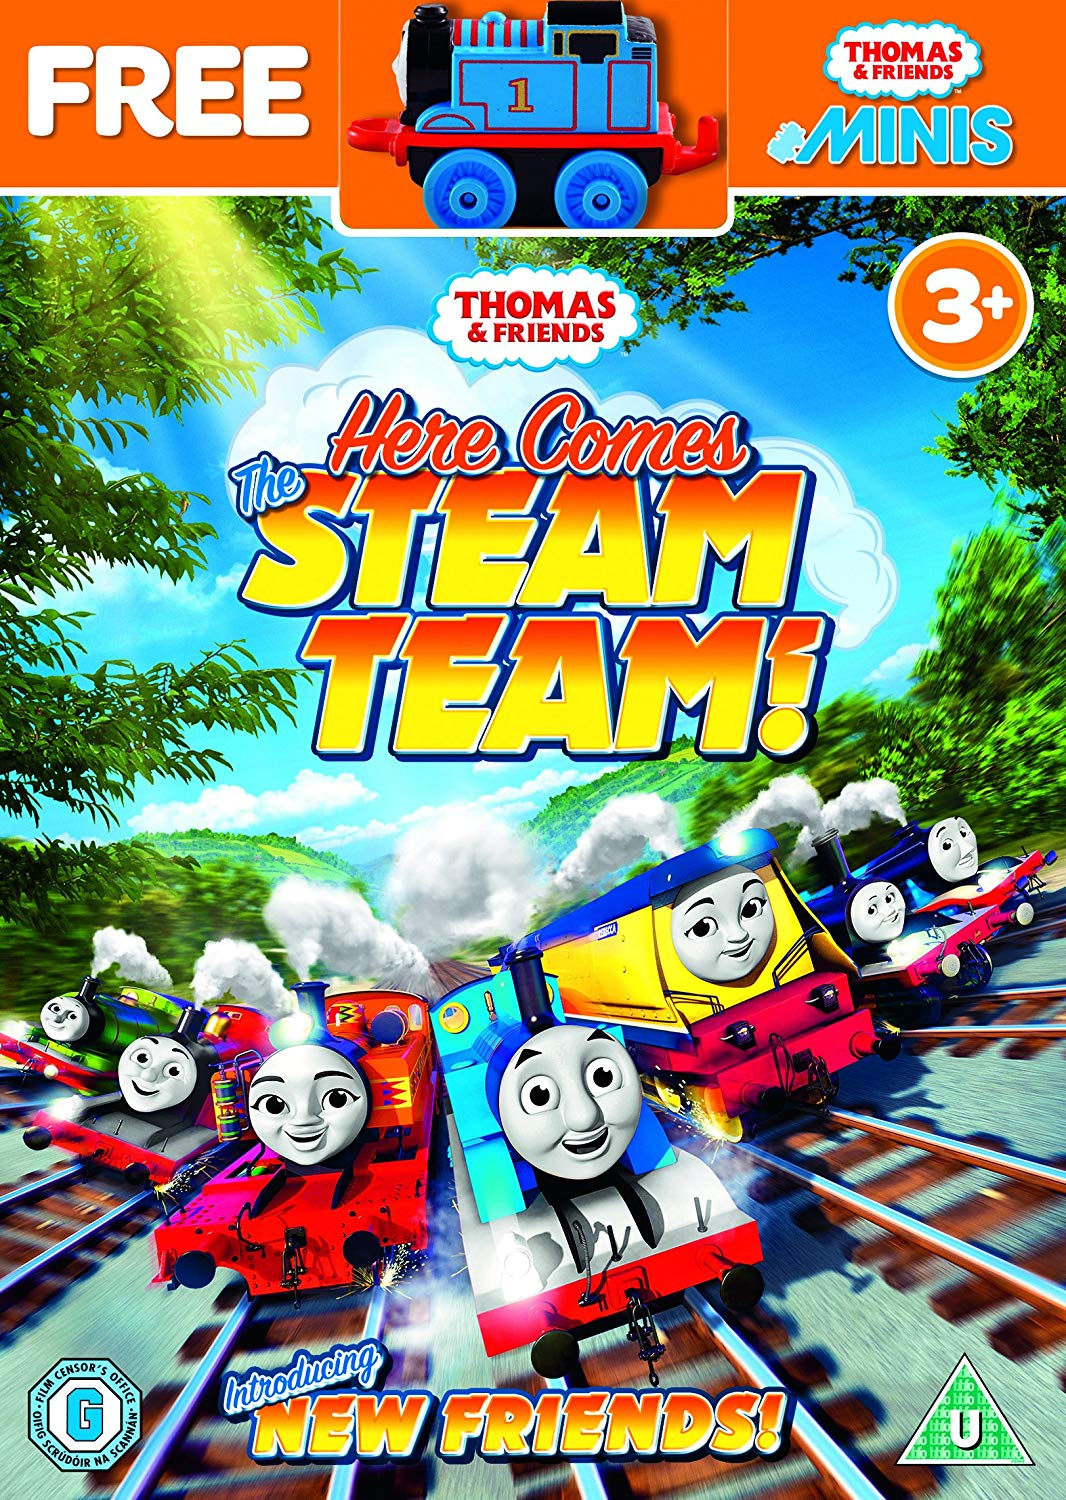 Here Comes the Steam Team | Thomas the Tank Engine Wikia | FANDOM powered by Wikia